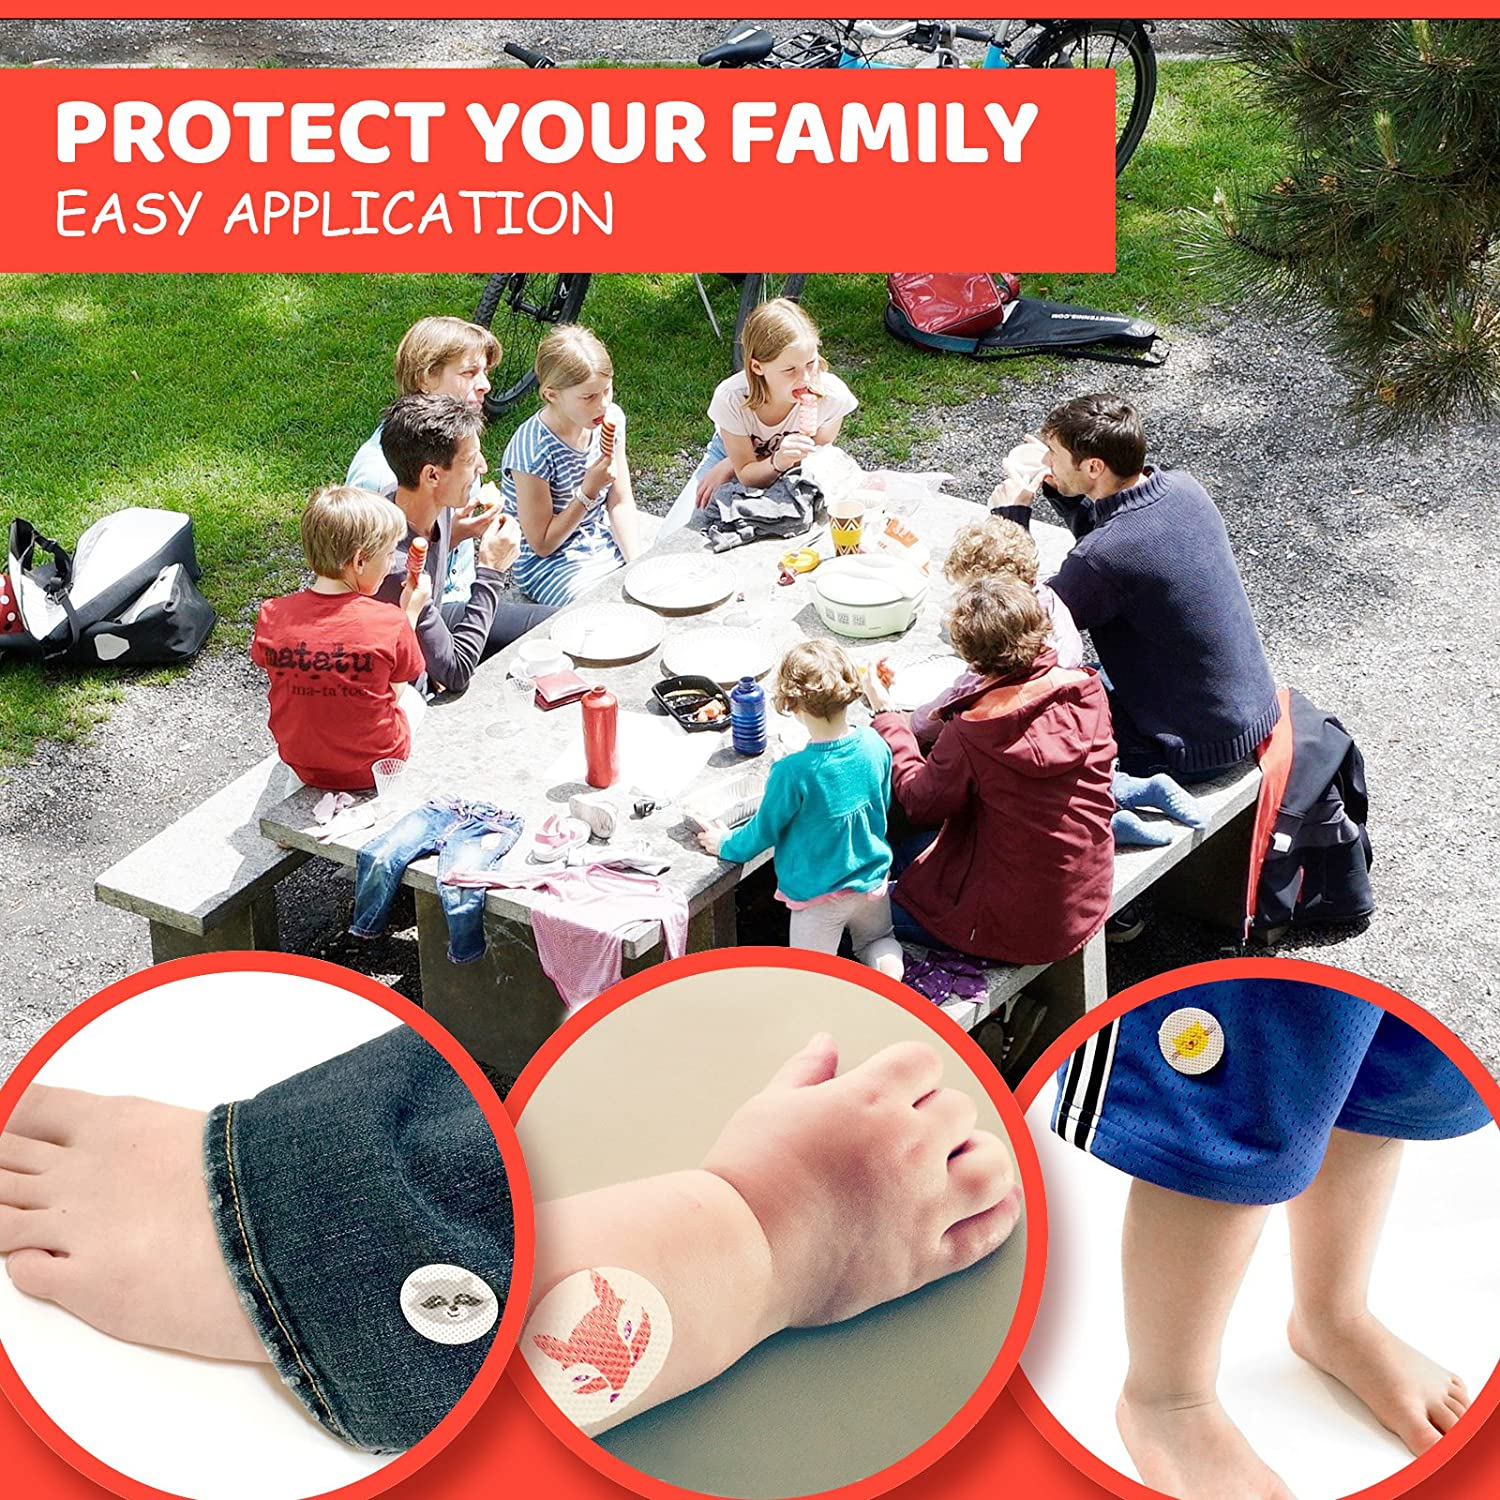 Best Mosquito Repellent Stickers With Citronella Oil Beauty Barn Kid Body For Kids Or Adults Includes Free E Book On Nature Crafts Portable Pest Repeller And